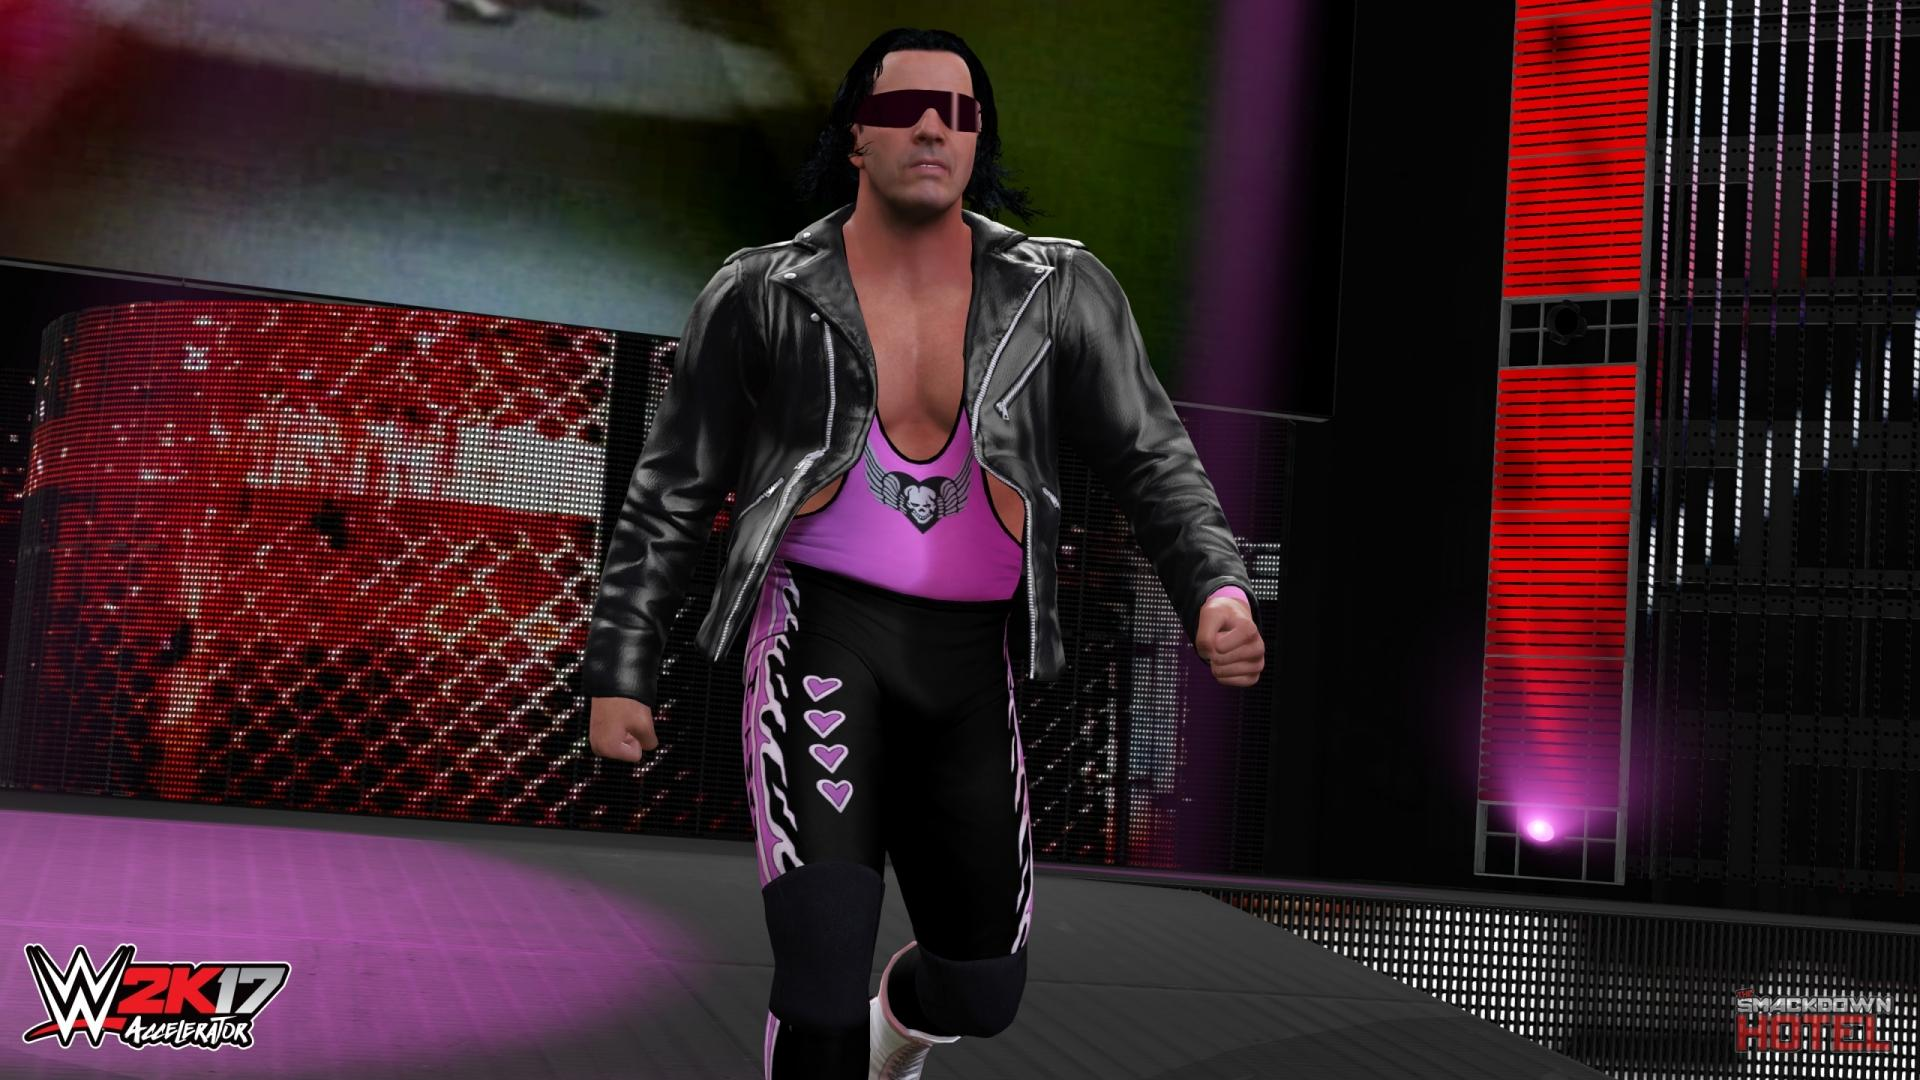 Fall Wallpapers Pc Bret Hart Wwe 2k17 Roster